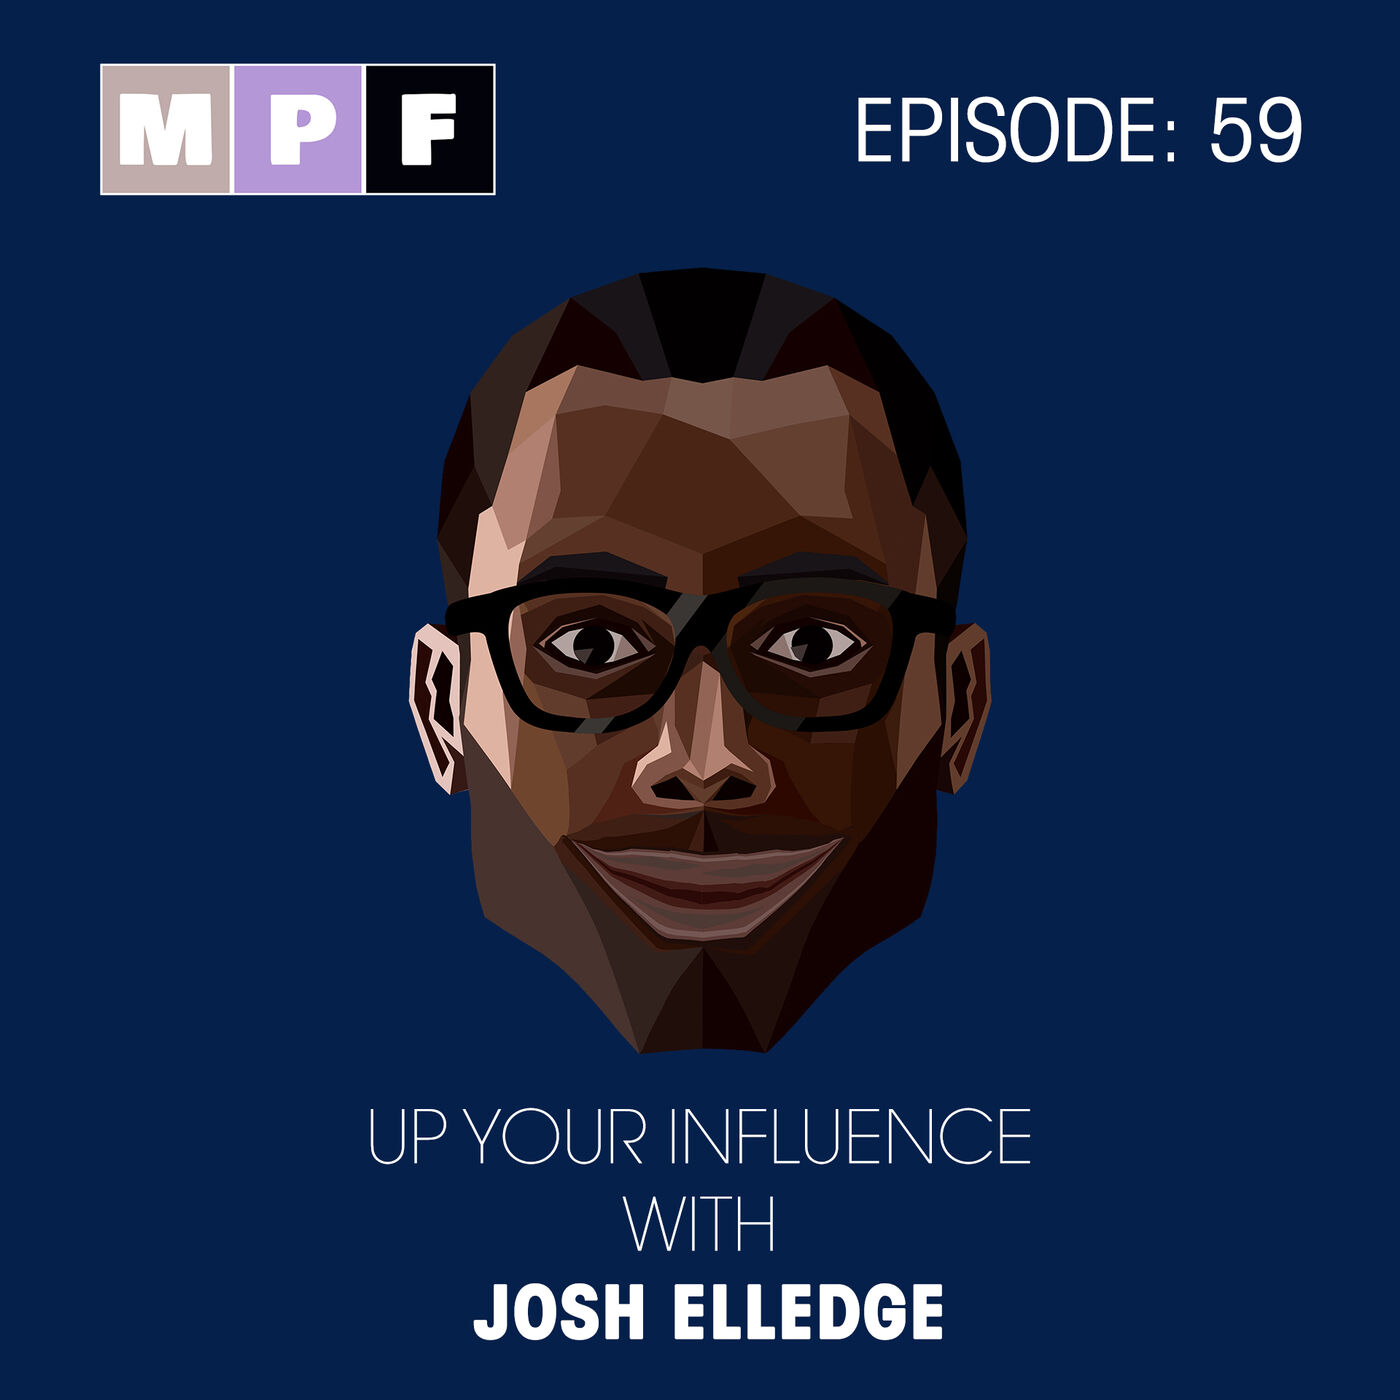 Up your Influence with Josh Elledge